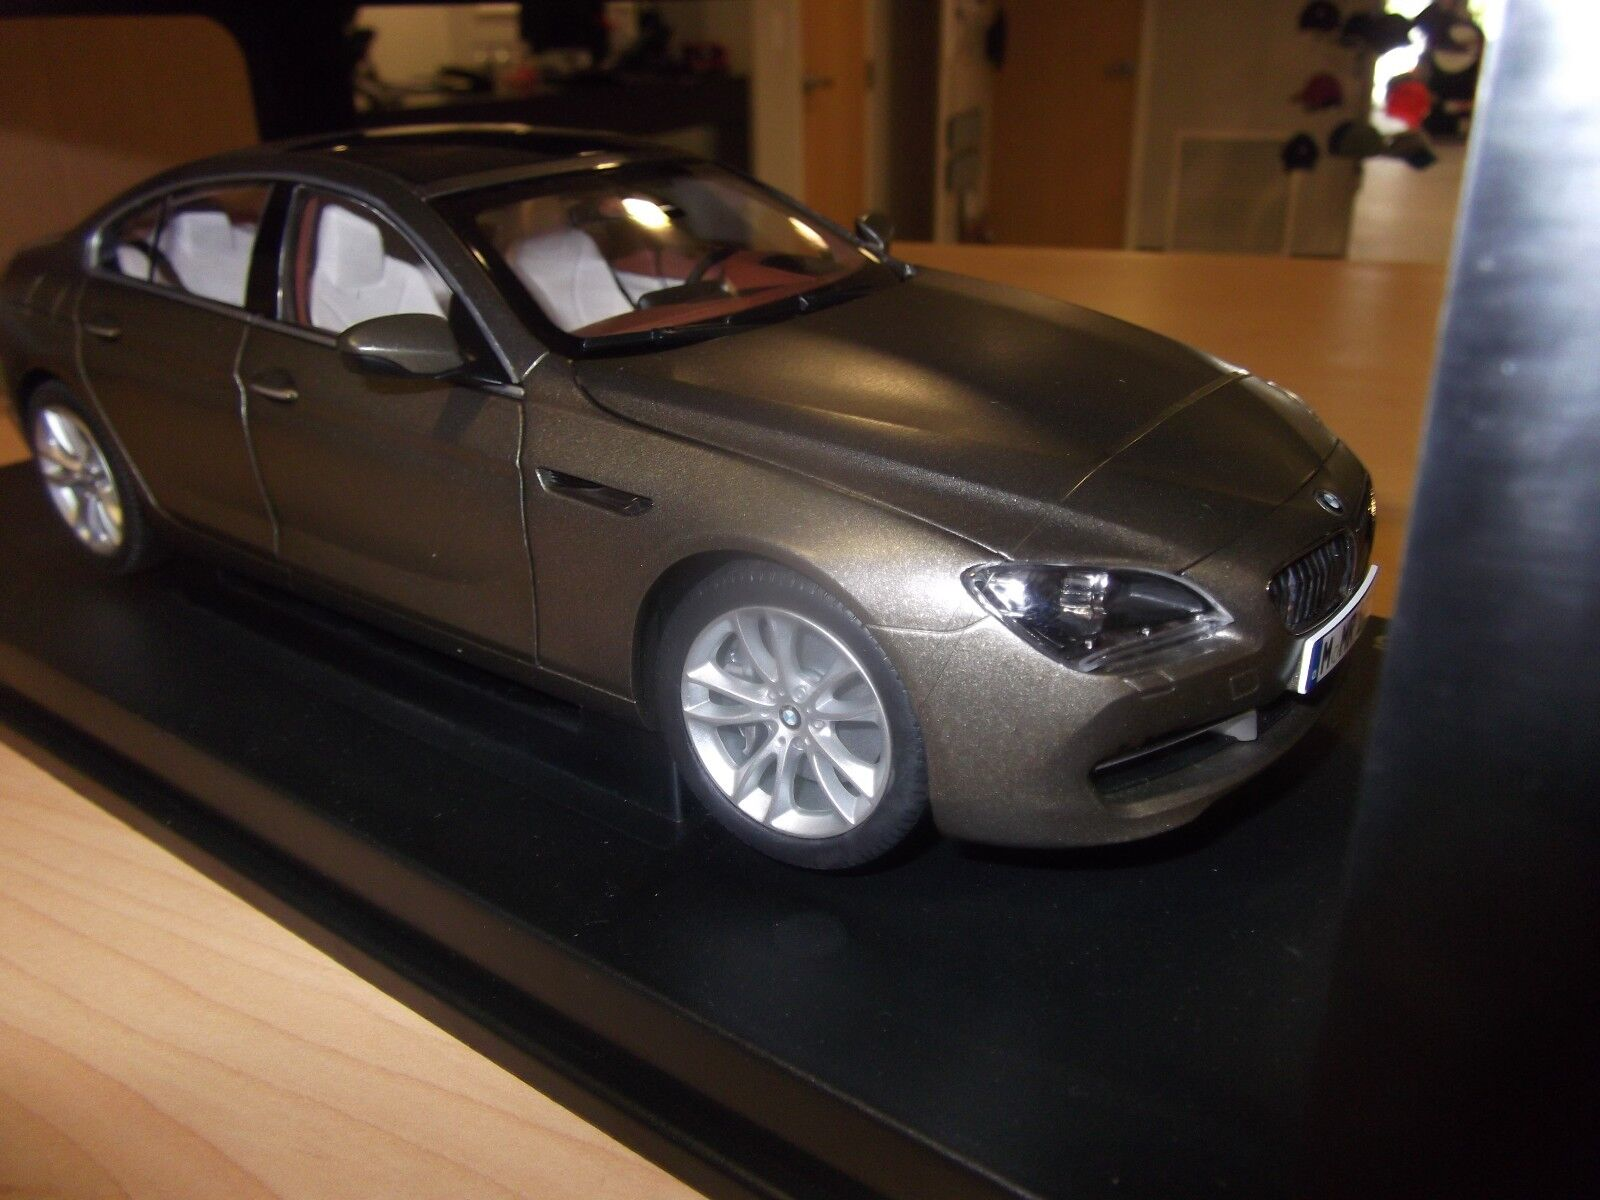 BMW 6 Series F06 Gran Coupe 1 18 scale Bronze Model Miniature 80432218742  OEM